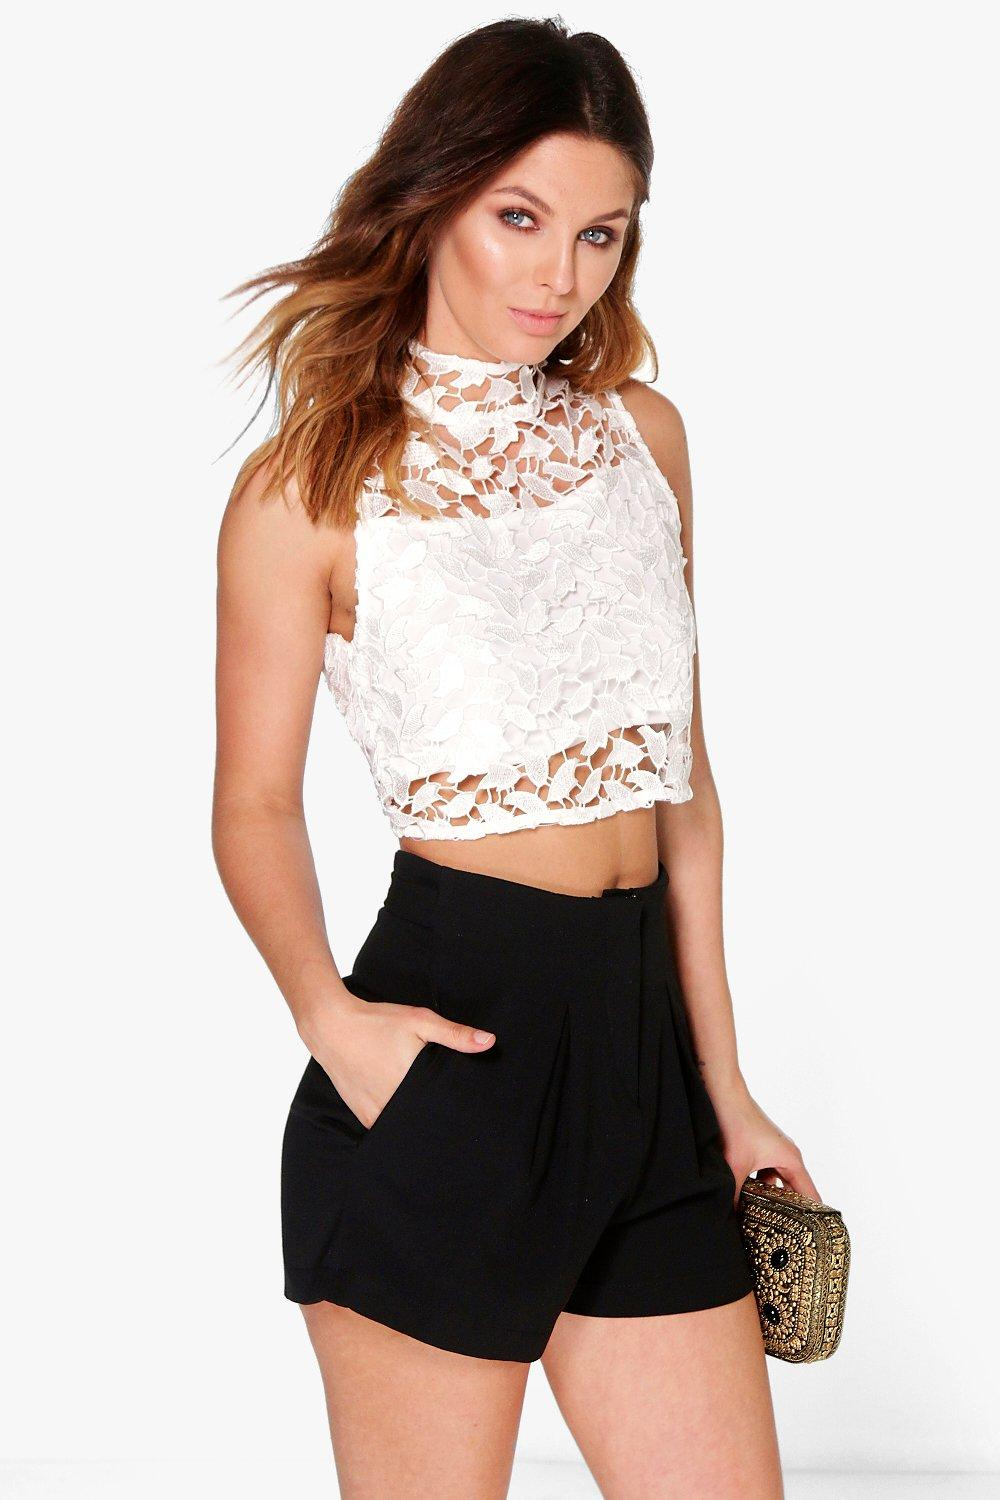 Boohoo womens layla boutique crochet lace crop top ebay for Boutique tops